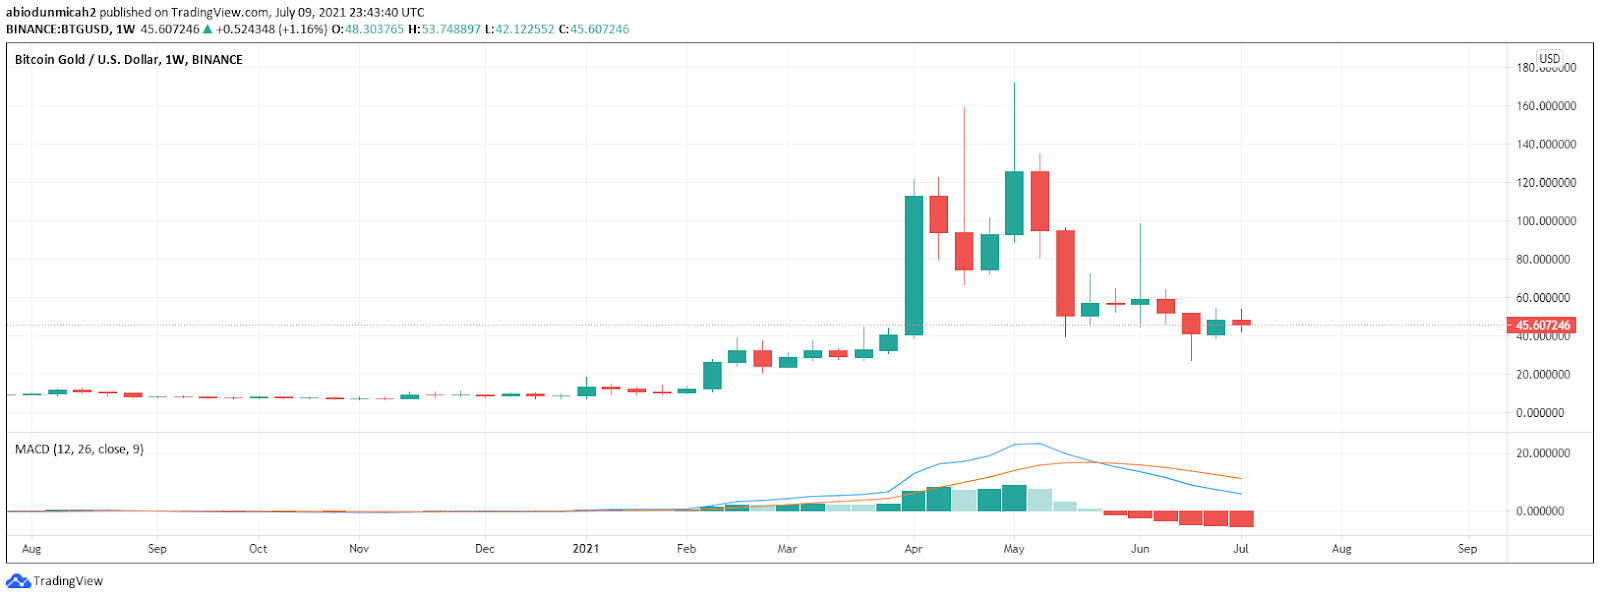 Bitcoin Gold Price Prediction 2021, 2023, 2025, and beyond 4